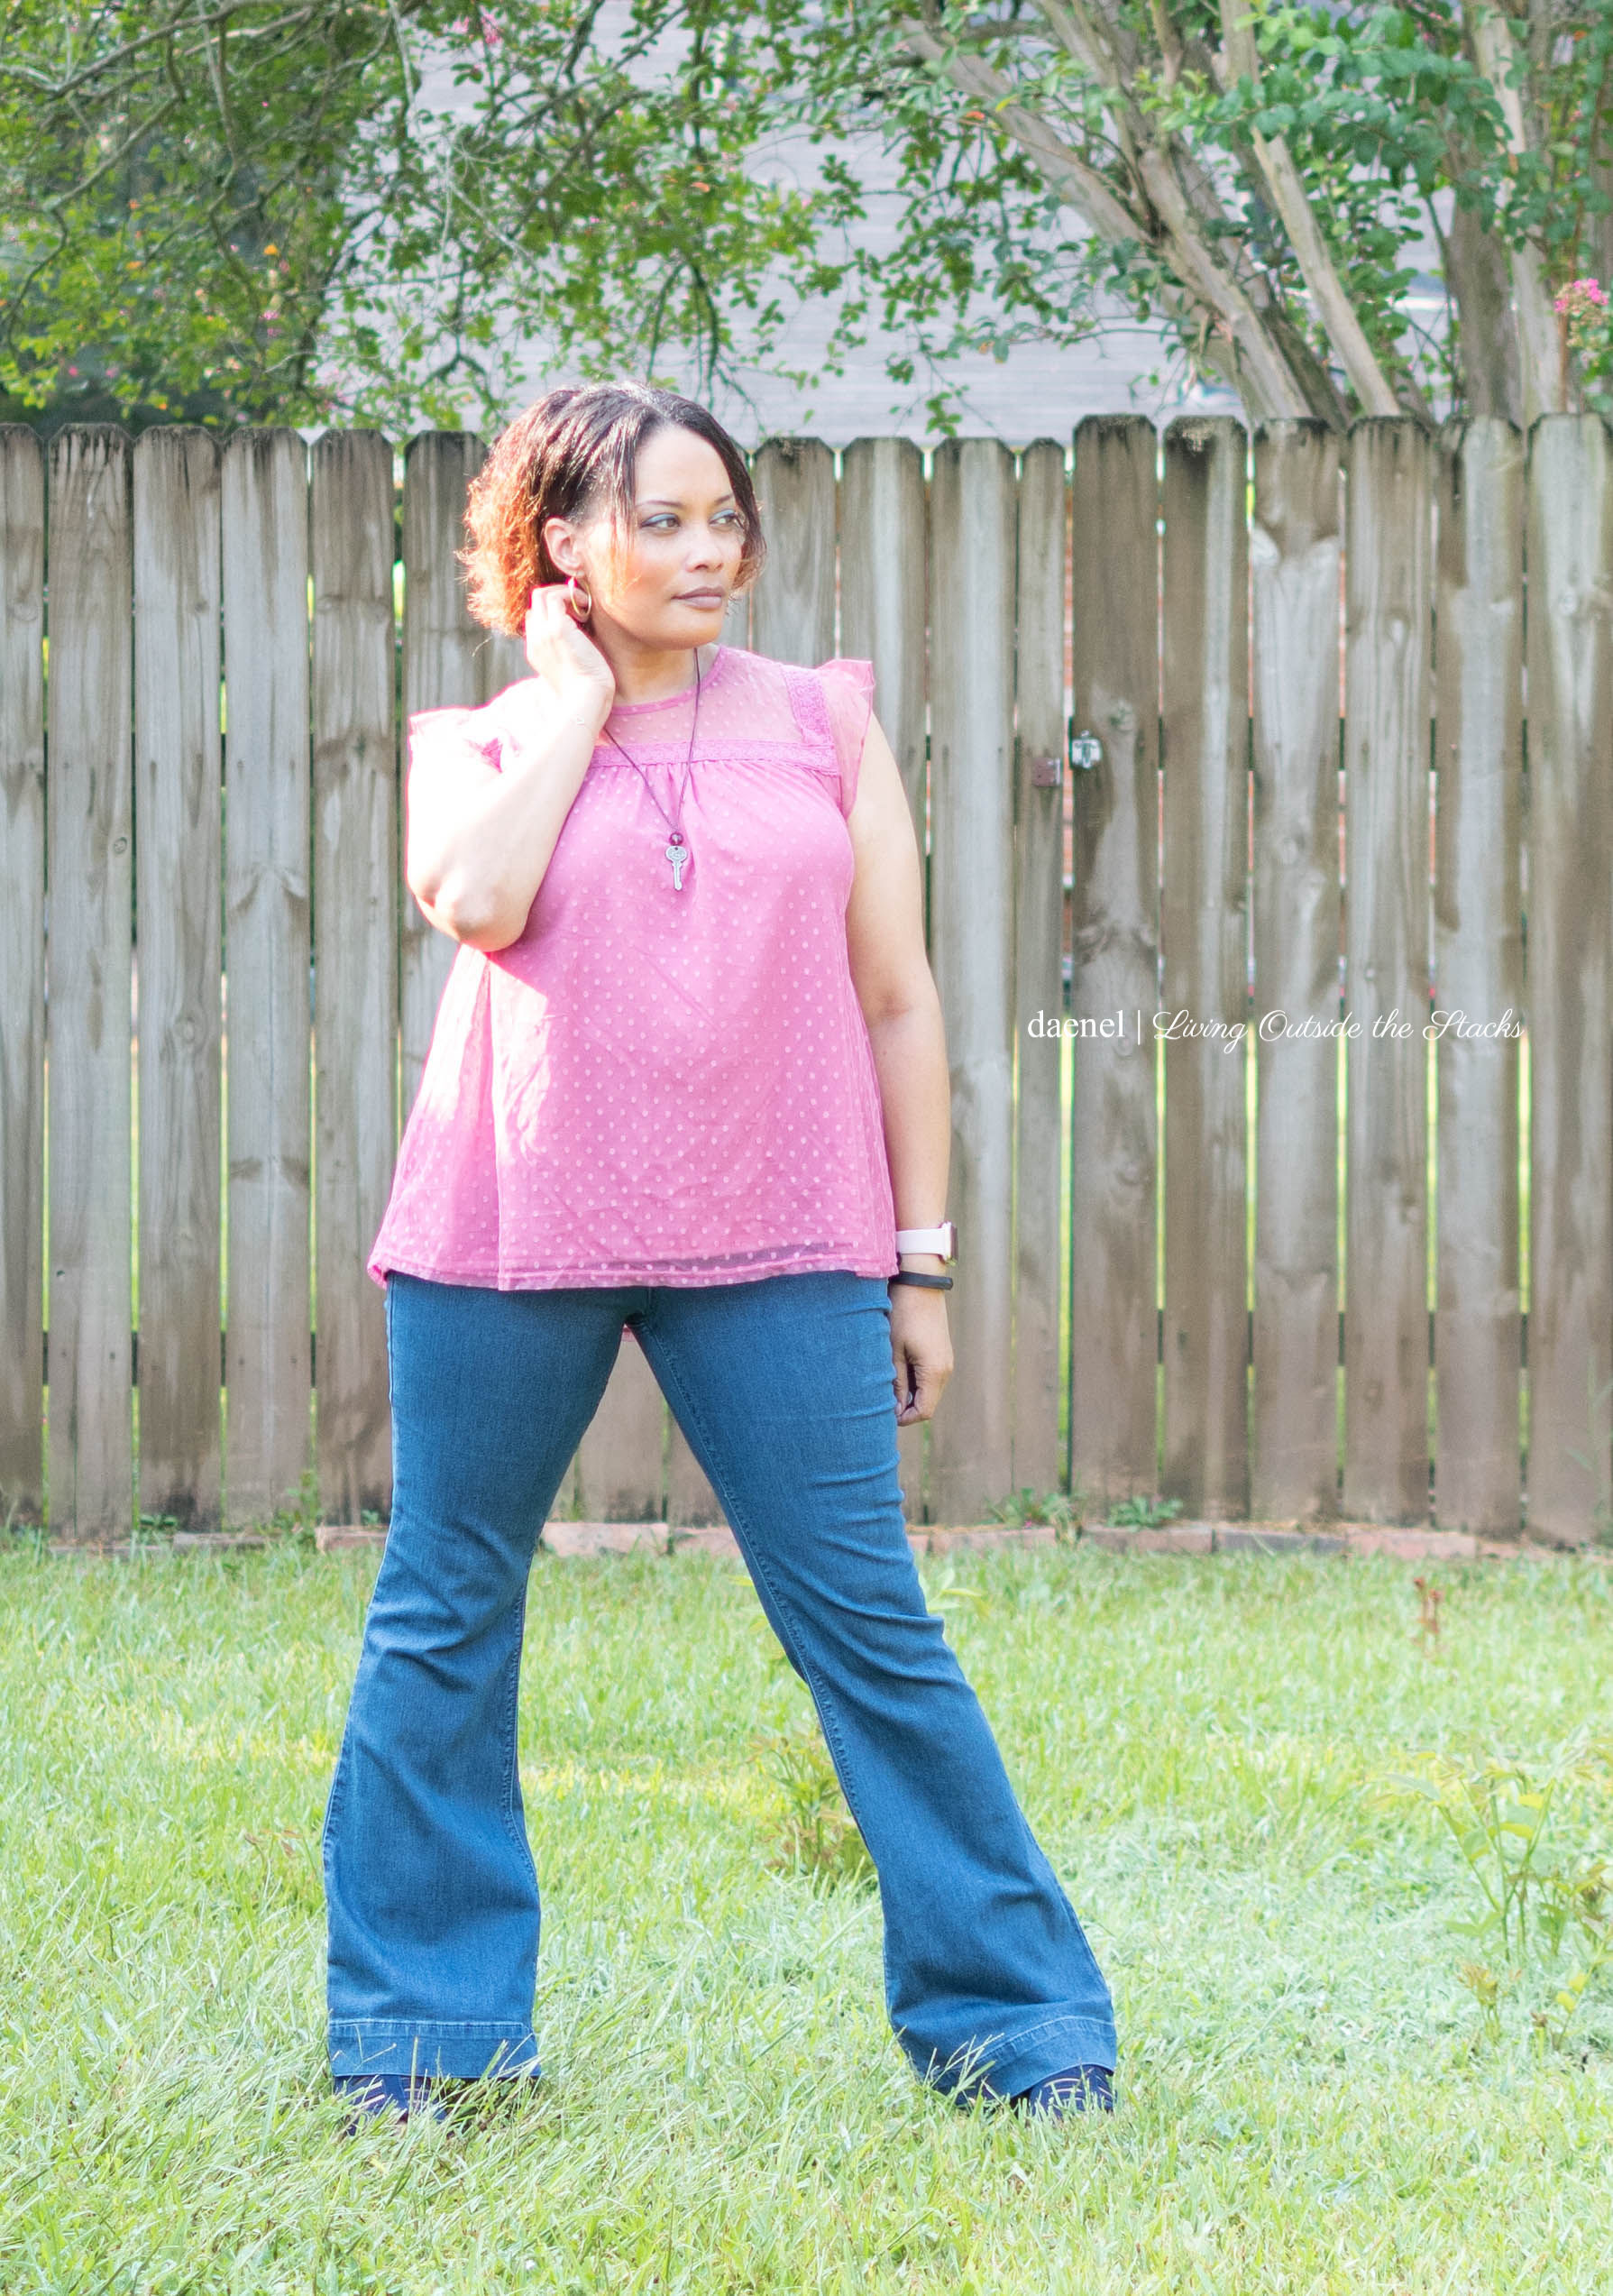 Laurie Felt Flare Leg Jeans and Mauve Baby Doll Top with Skechers Shoes {living outside the stacks} #NiceJeans